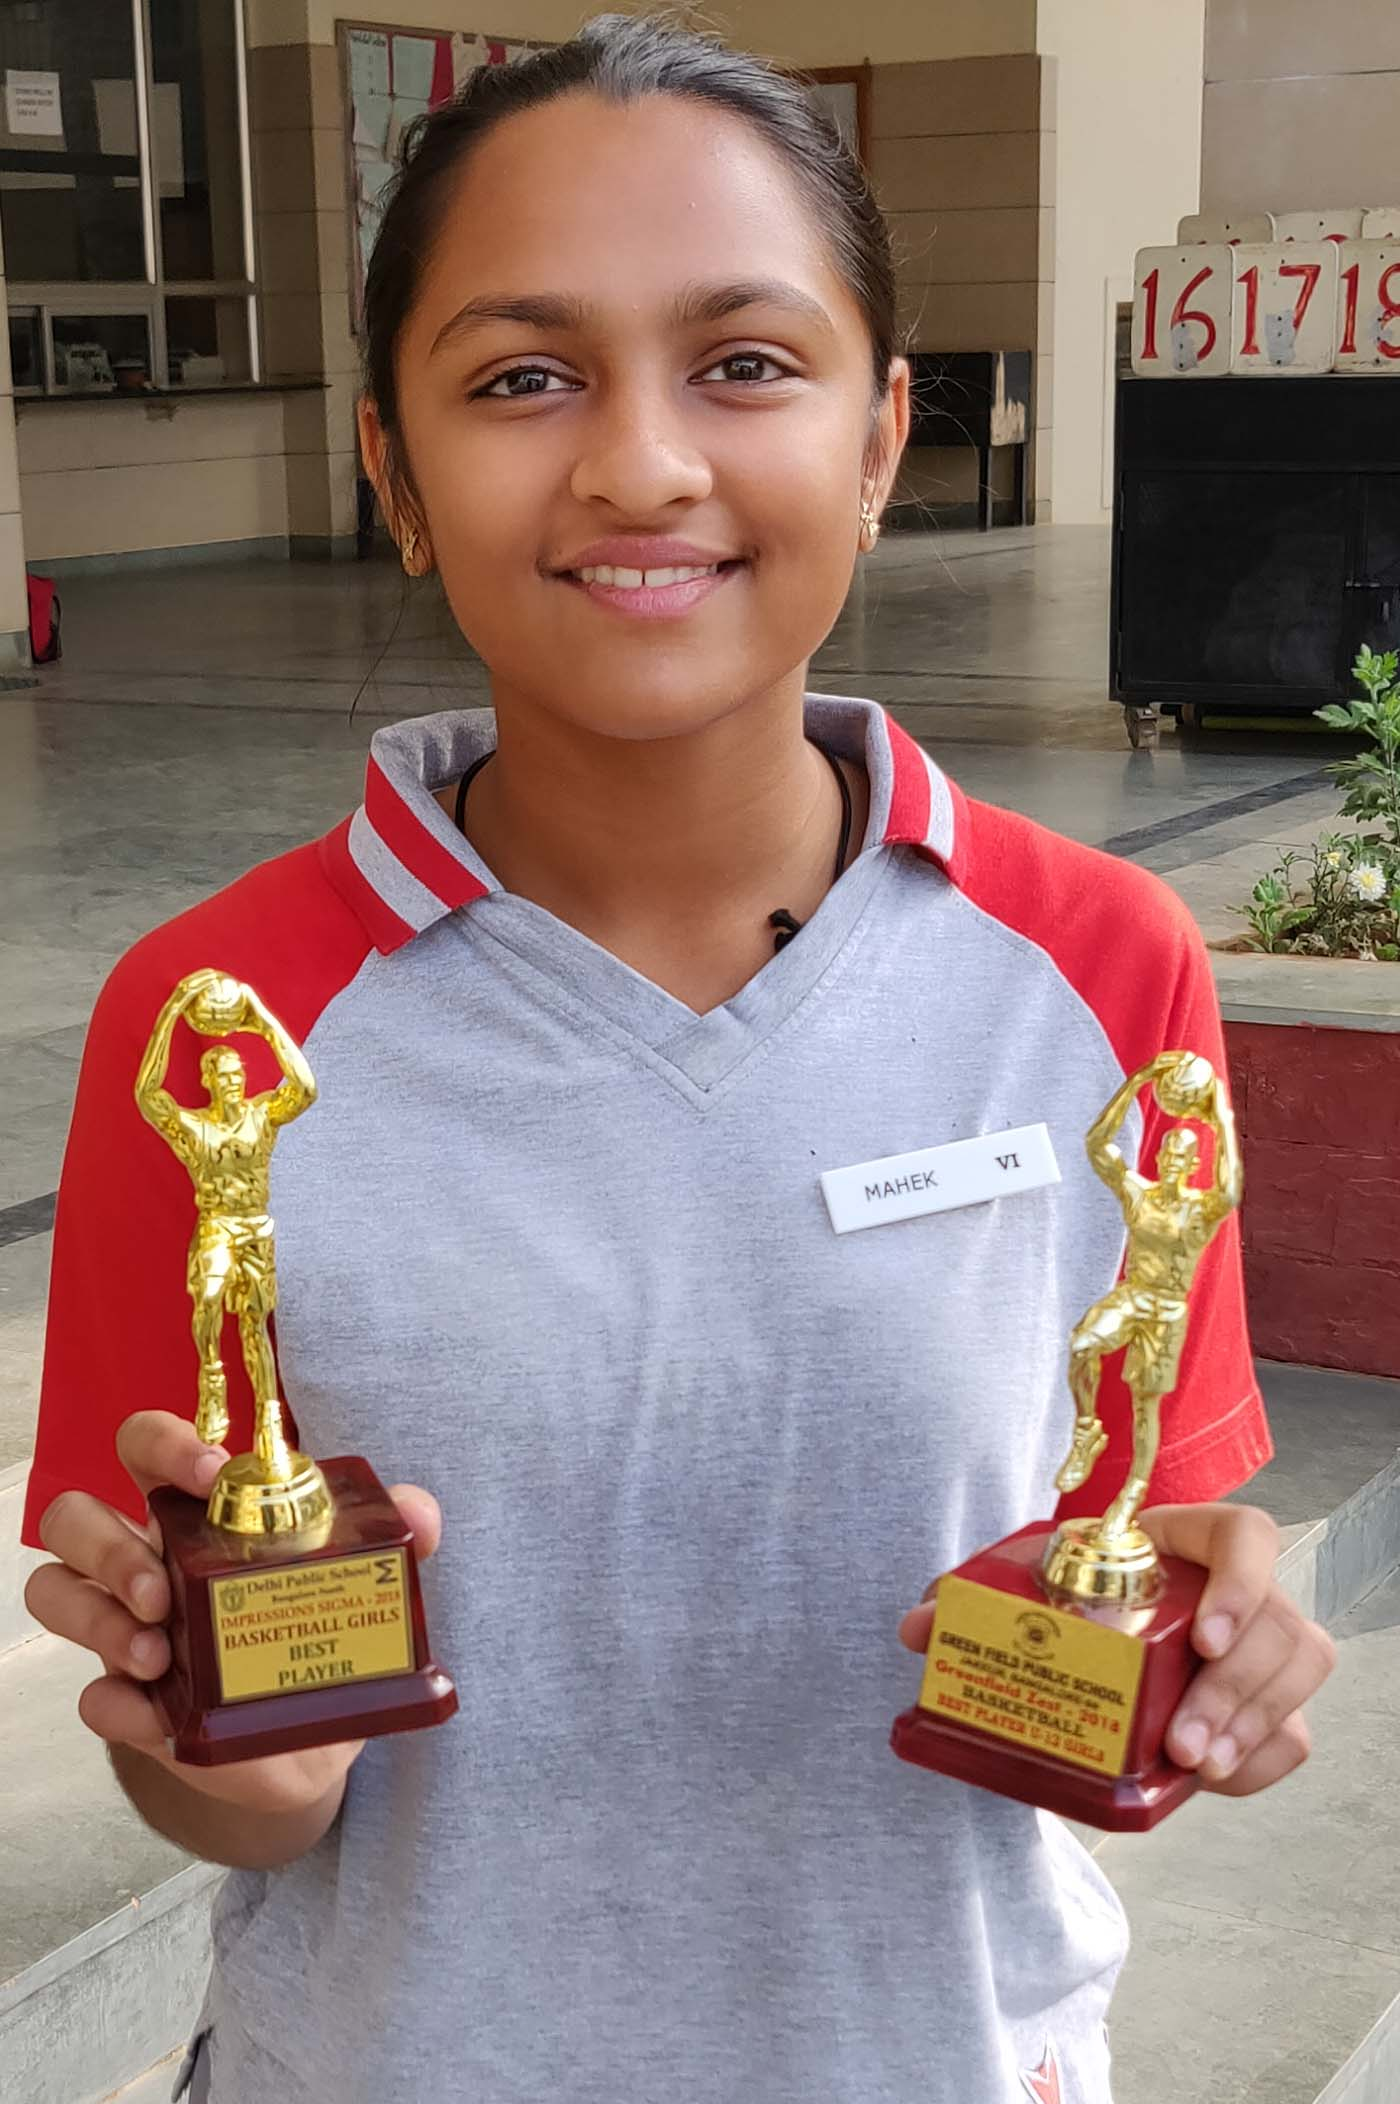 Mahek Shah - Best Basketball Player at Greenfield Public School and DPS